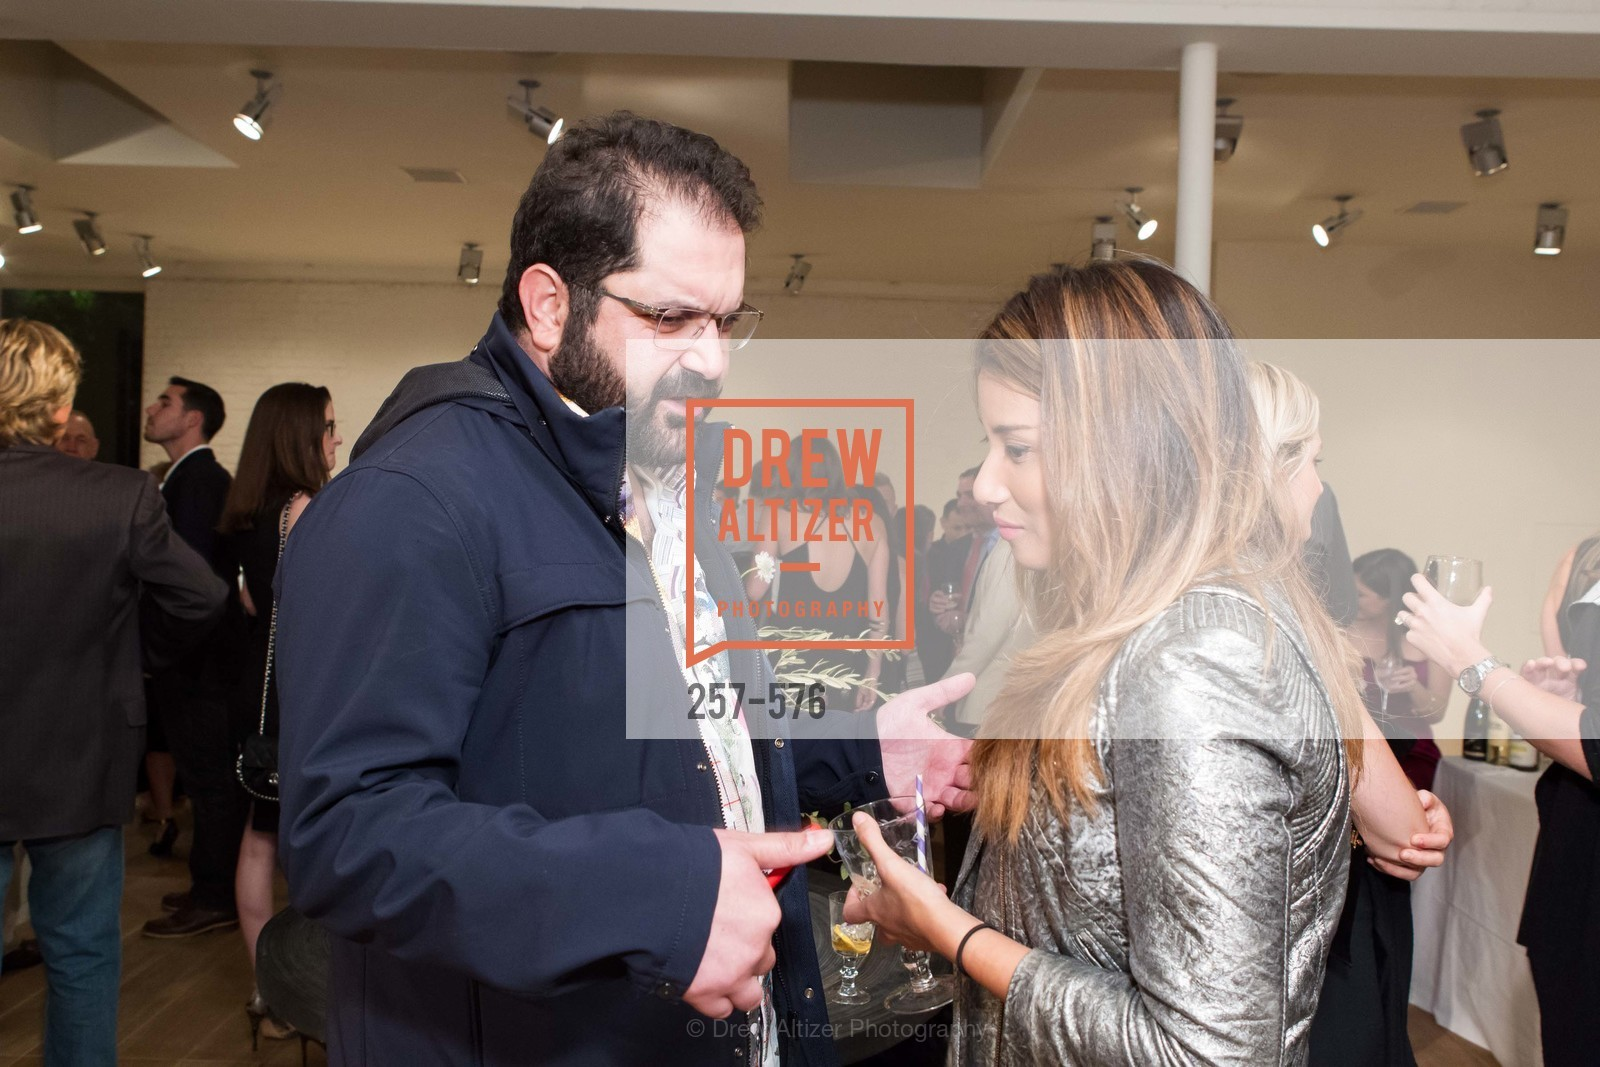 Shervin Pishevar, Evelyn Rusli, SF FALL ANTIQUES SHOW Designer's Circle Cocktail Party at HEWN, US, September 23rd, 2014,Drew Altizer, Drew Altizer Photography, full-service event agency, private events, San Francisco photographer, photographer California